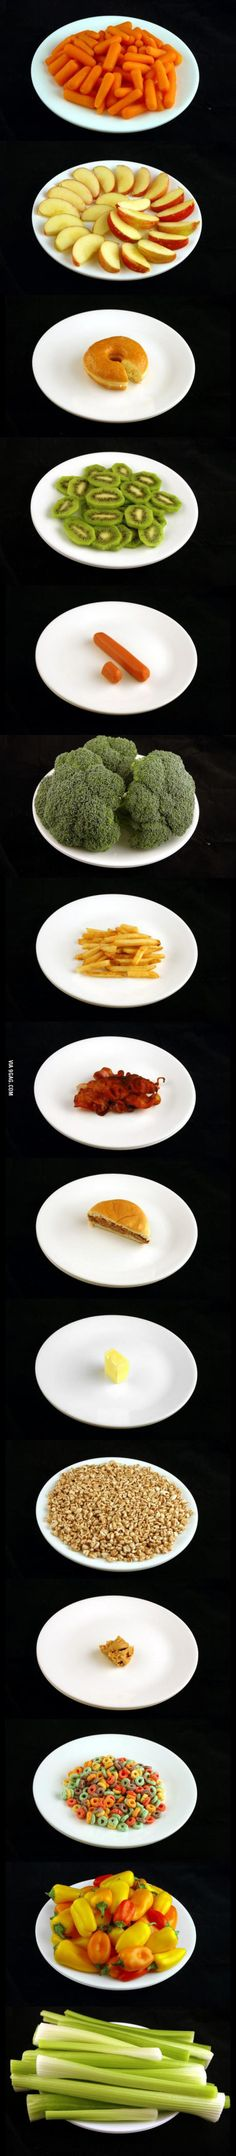 ...............200 Calories............. ....looks like in different food.....